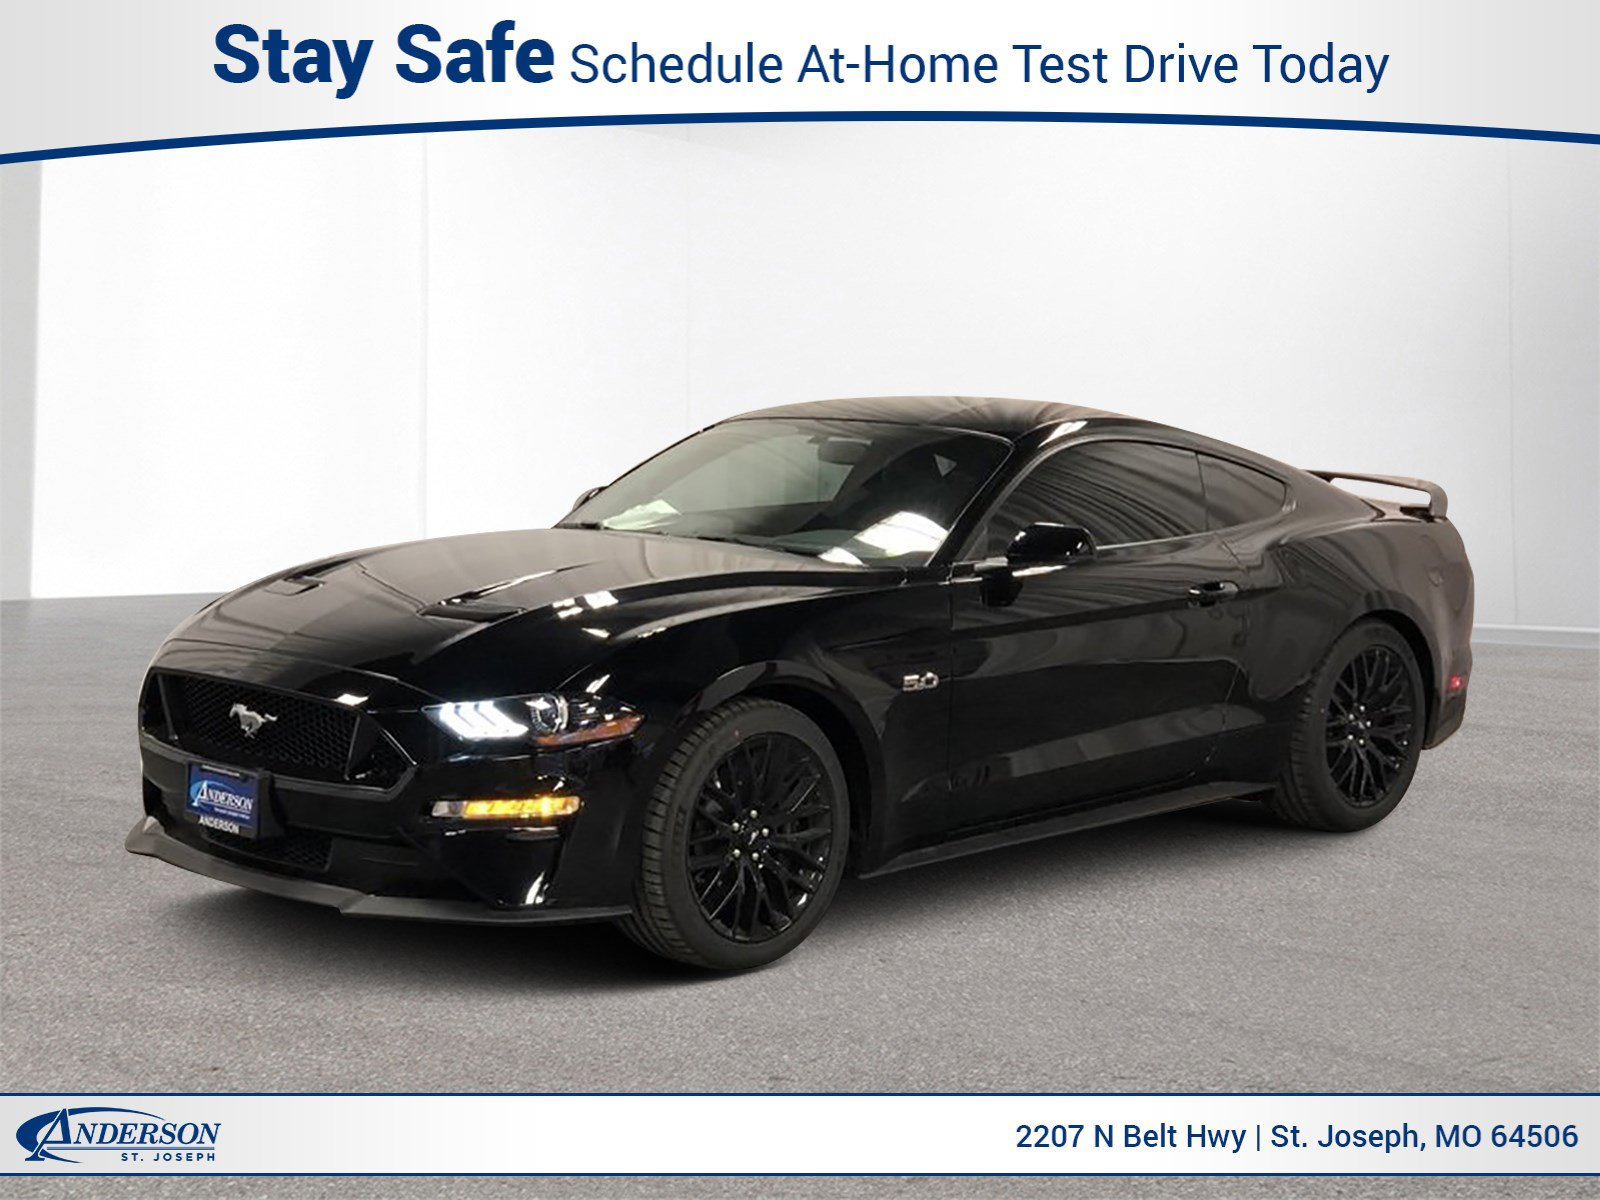 New 2020 Ford Mustang GT Premium 2dr Car for sale in St Joseph MO